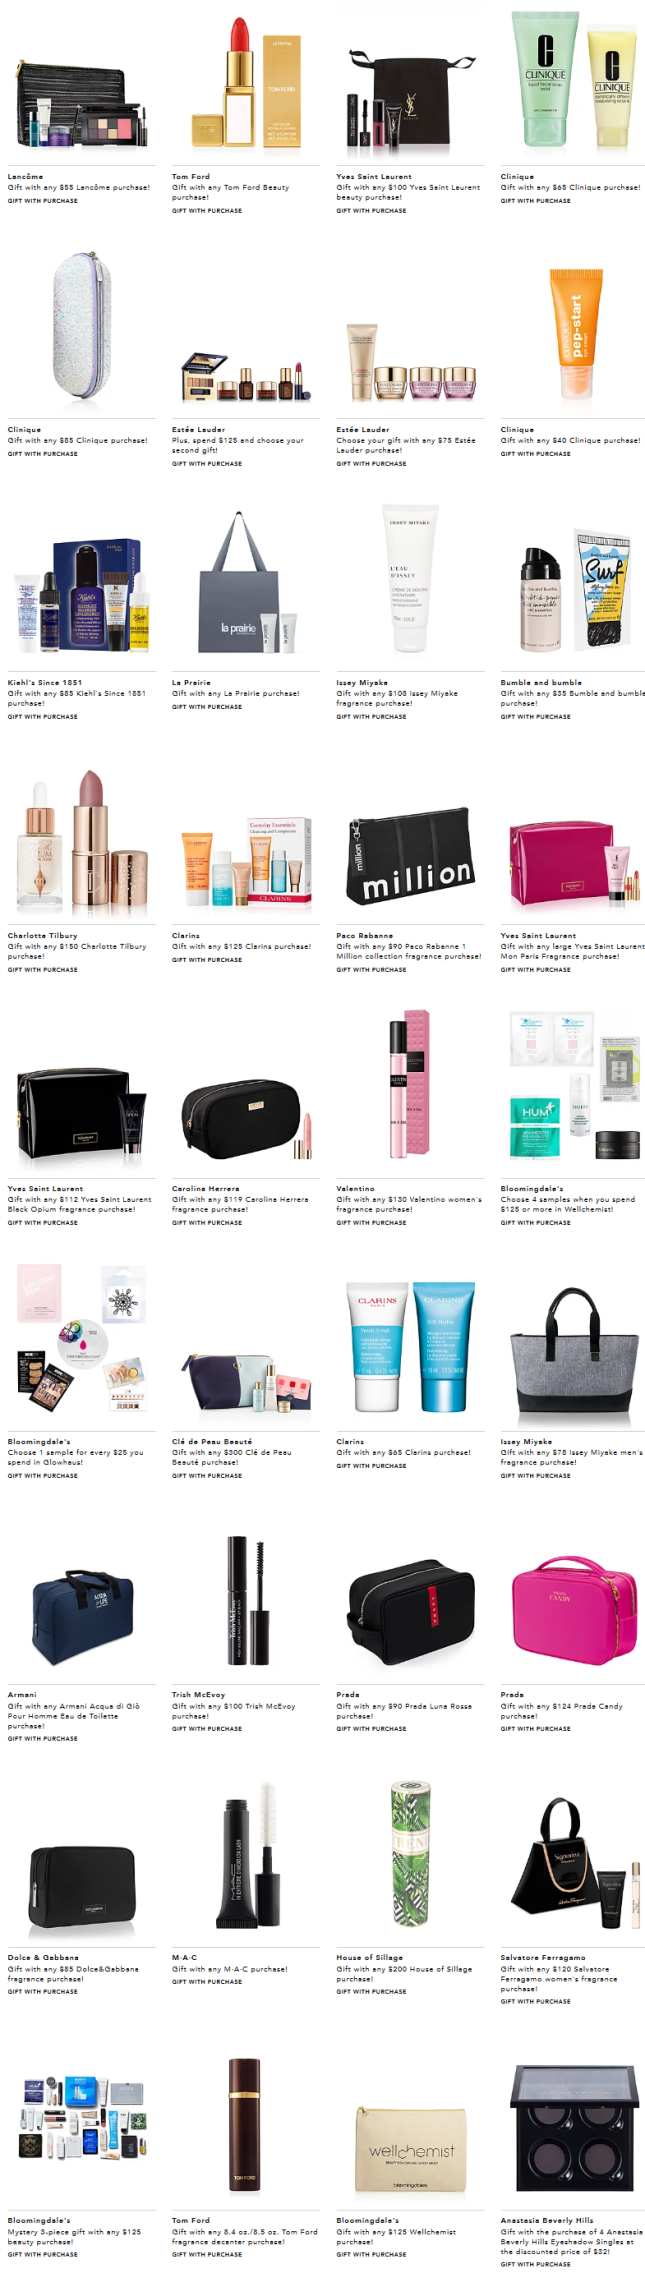 Free_Gift_With_Purchase_Beauty_Makeup_Bloomingdale_s (2)